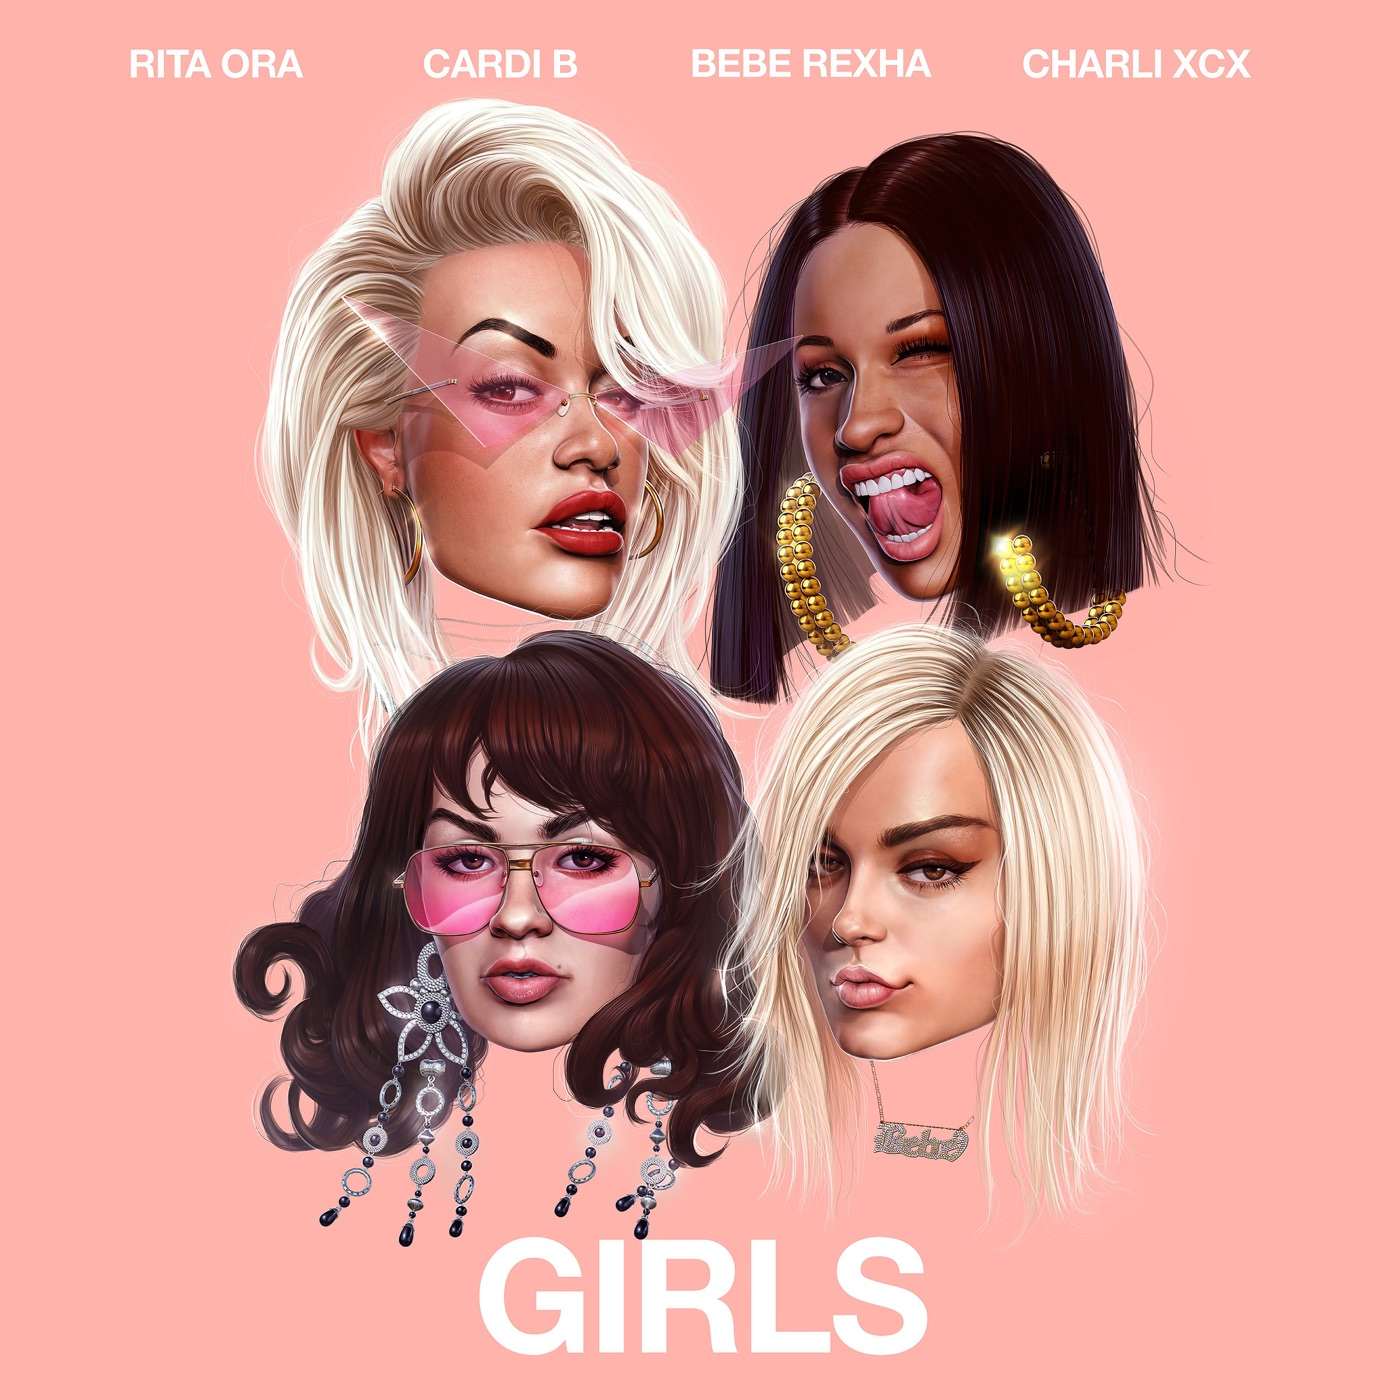 Download Rita Ora Girls feat Cardi B Bebe Rexha & Charli XCX